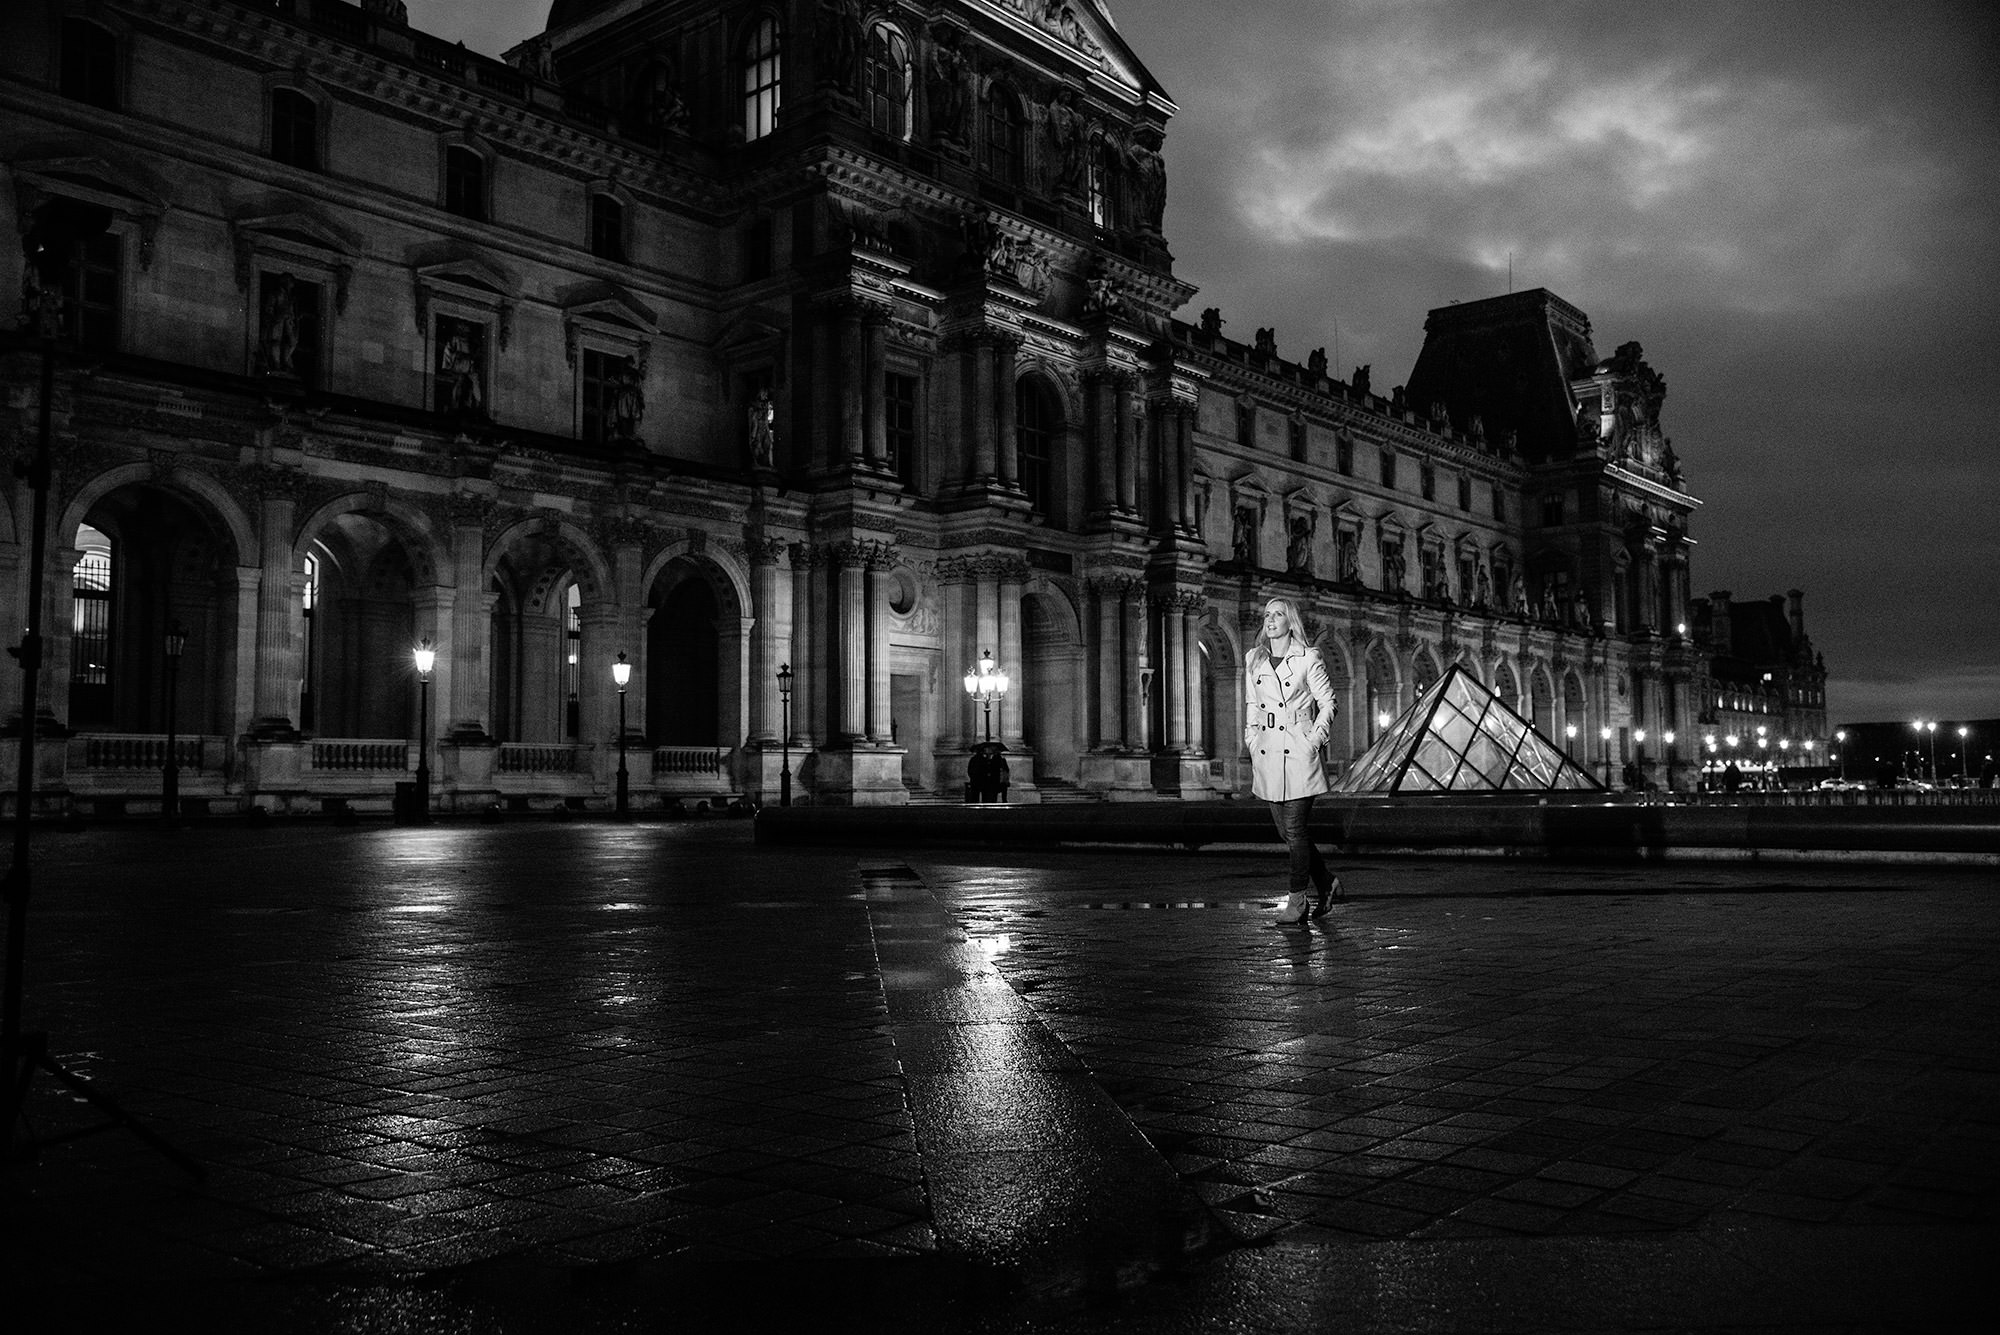 le-louvre-at-night-1